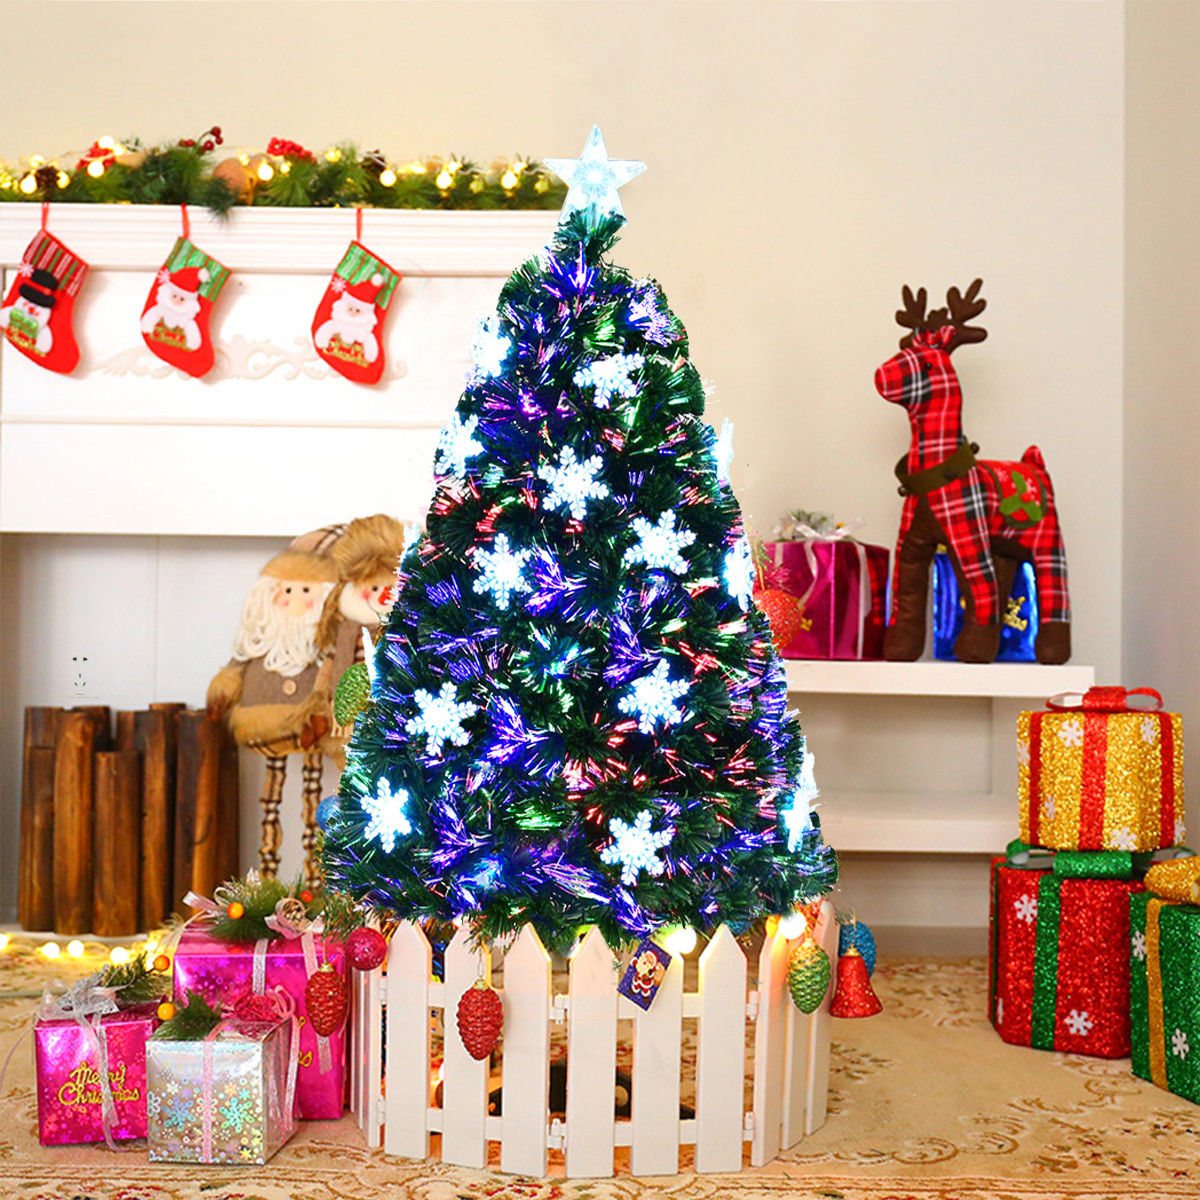 Gymax 4' Pre-Lit Multi-Color Lights Fiber Optic Artificial Christmas Tree with Snowflakes - image 7 of 7